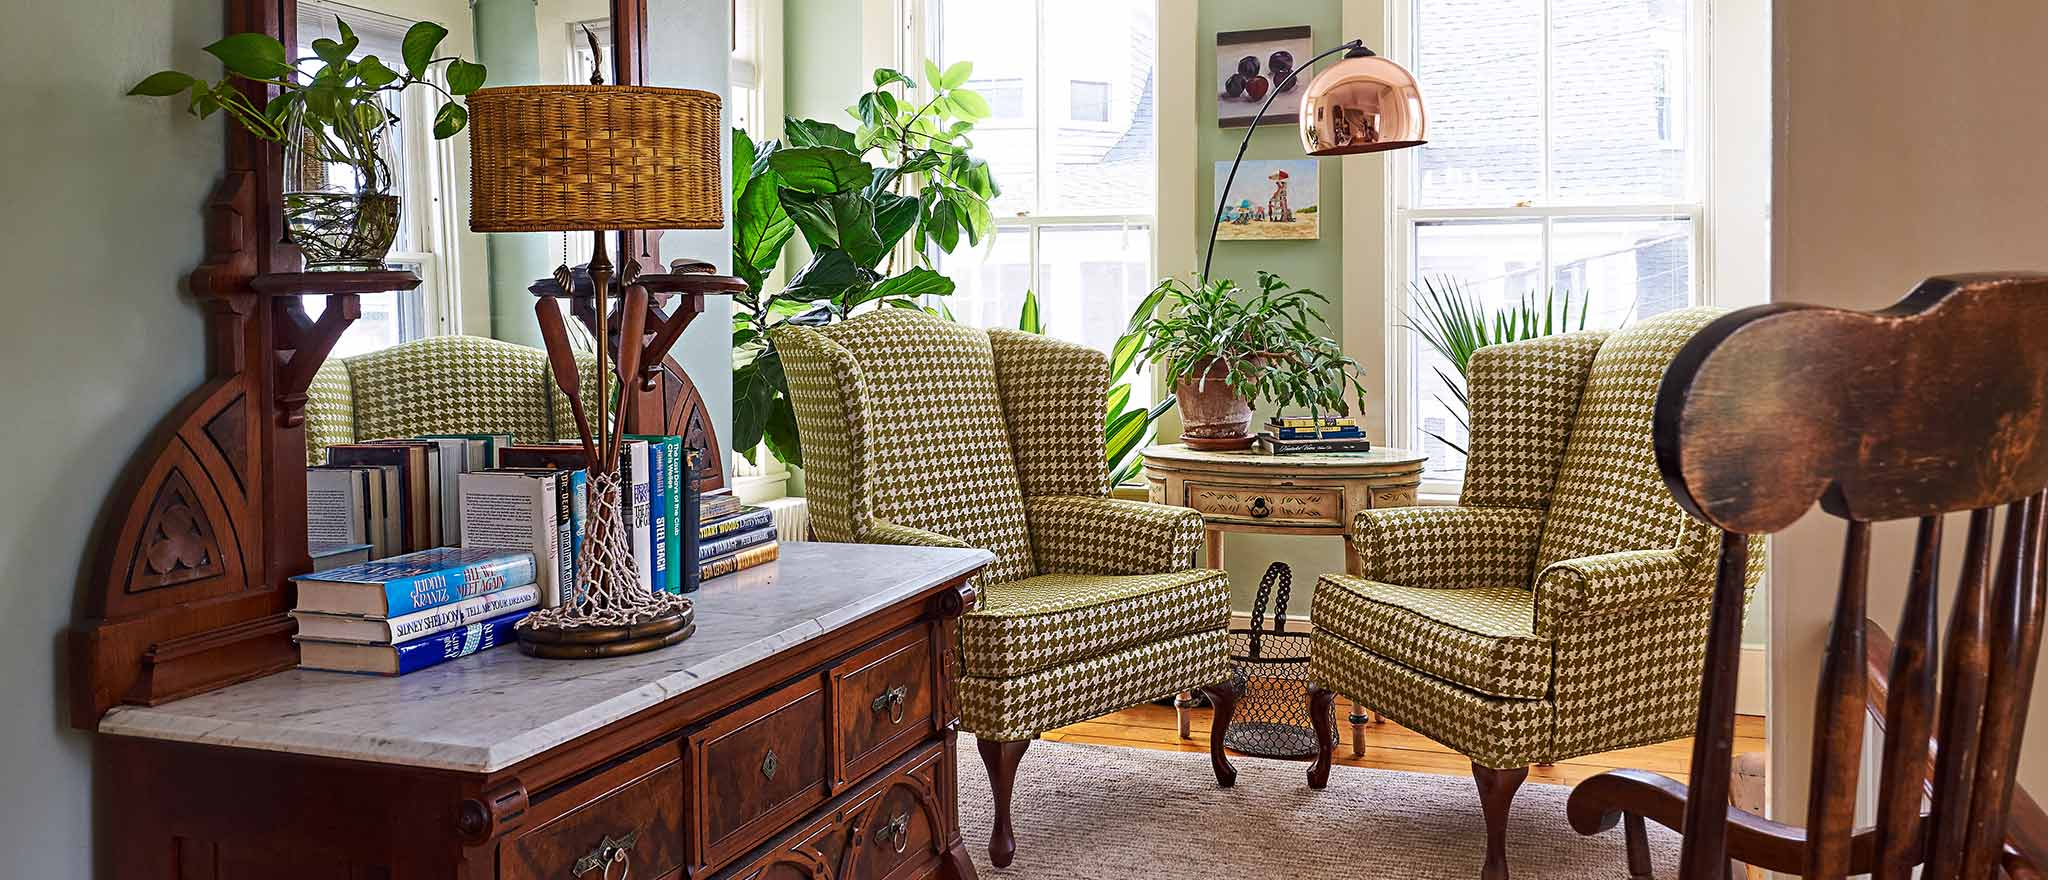 Sitting room with two chairs and antique wood dresser and airy bright windows